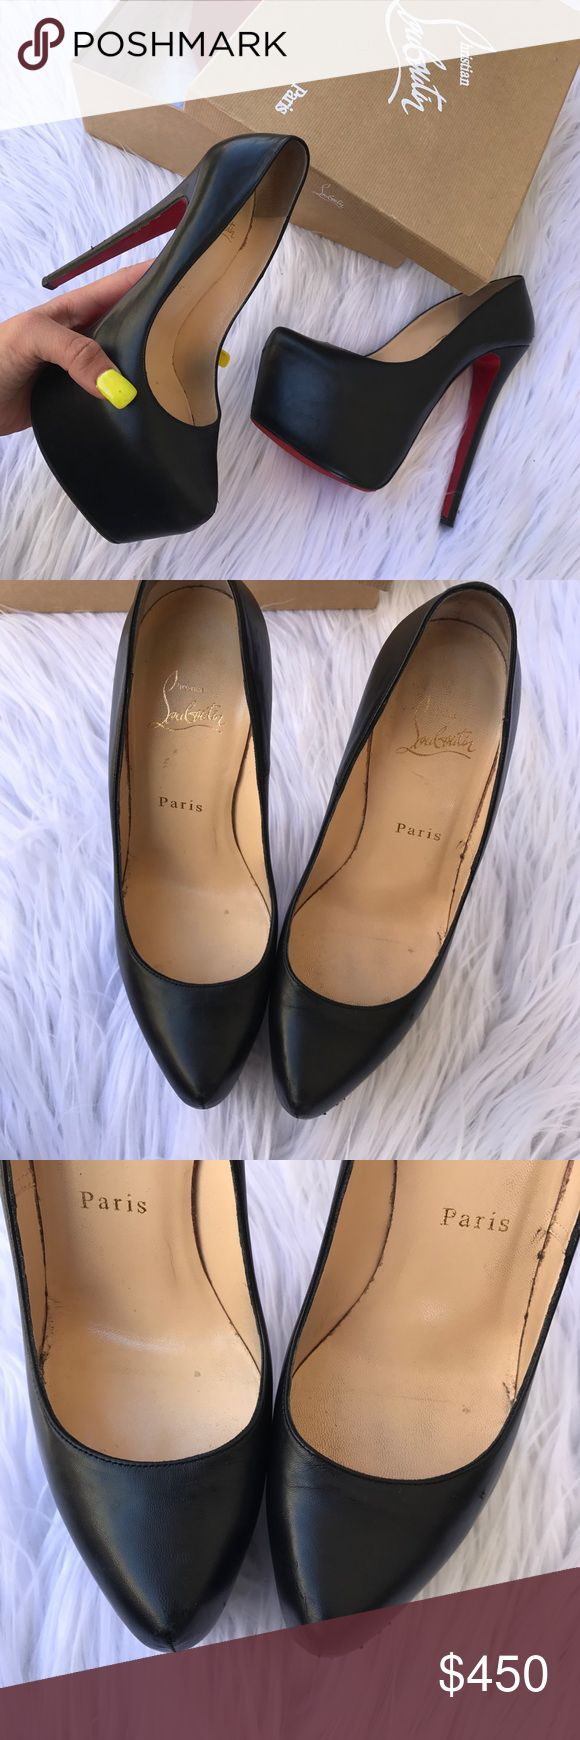 CHRISTIAN LOUBOUTIN 37 or 6 DAFFODILE HEELS SHOES 100% authentic ! DAFFODILE black Louboutins ! Examine photos carefully please :) they always run a SZ smaller so they fit a 6 best!:) Christian Louboutin Shoes